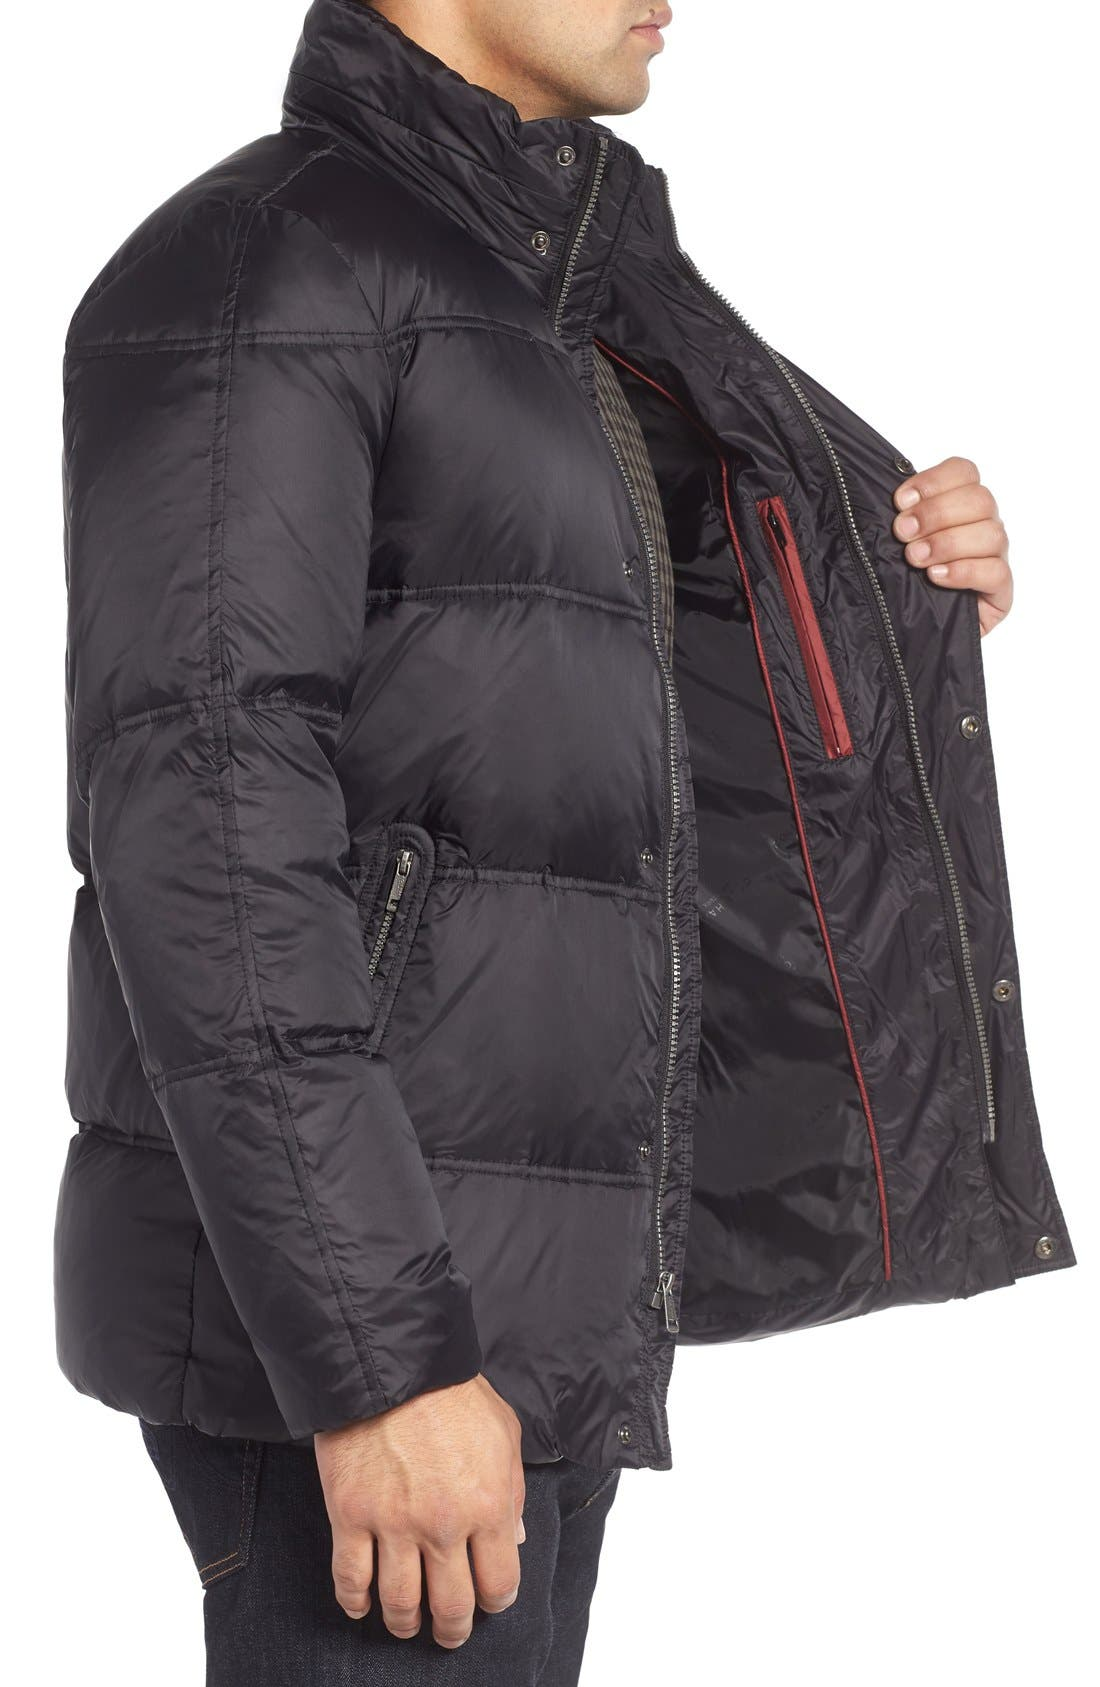 Quilted Jacket with Convertible Neck Pillow,                             Alternate thumbnail 3, color,                             Black